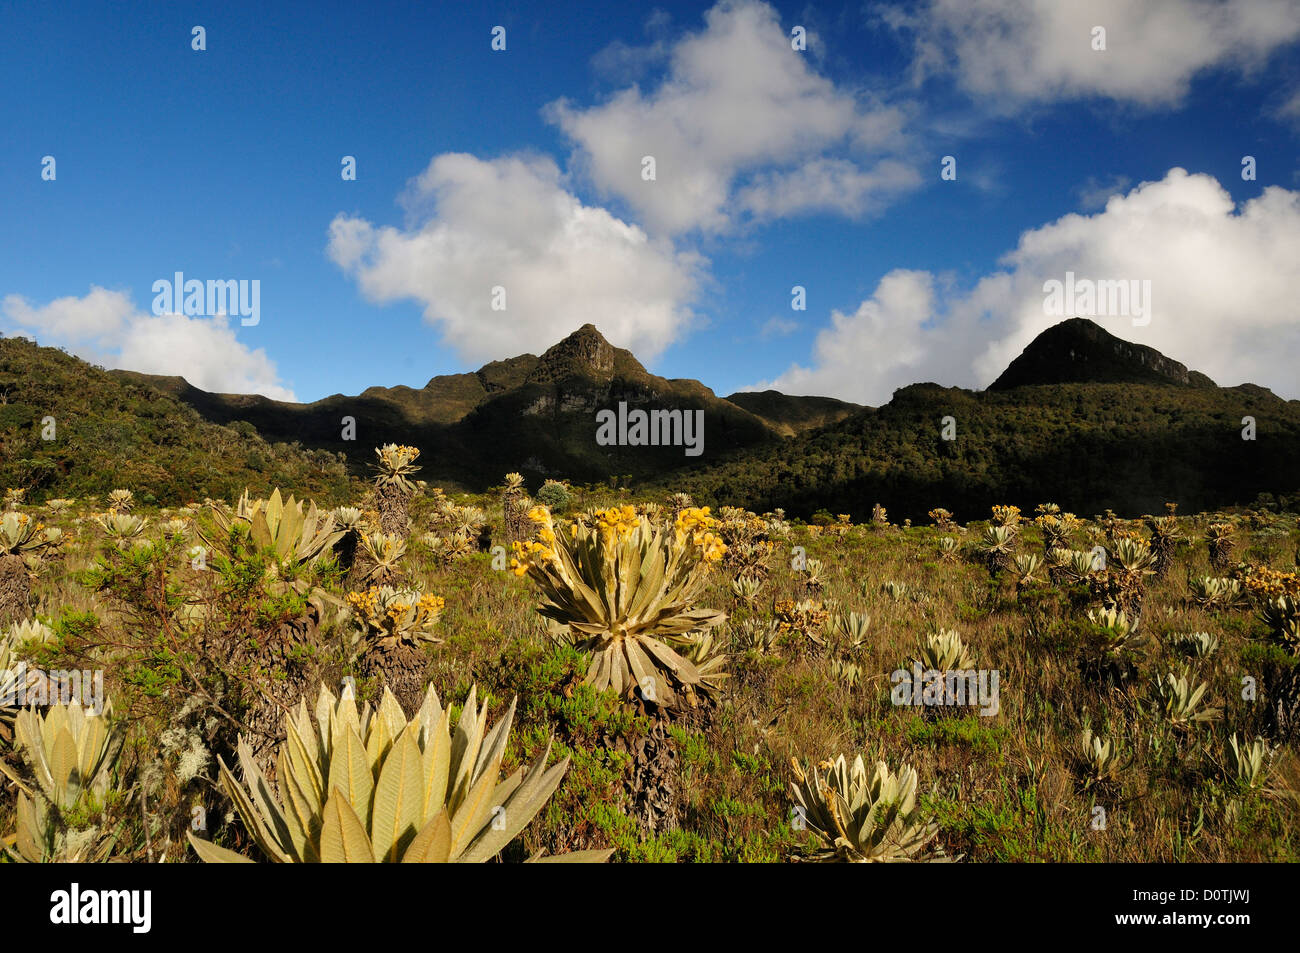 Flower, blooming, High, altitude, Andes, Frailejones, Totoro, Inza, Navado de Huilo, Colombia, South America - Stock Image